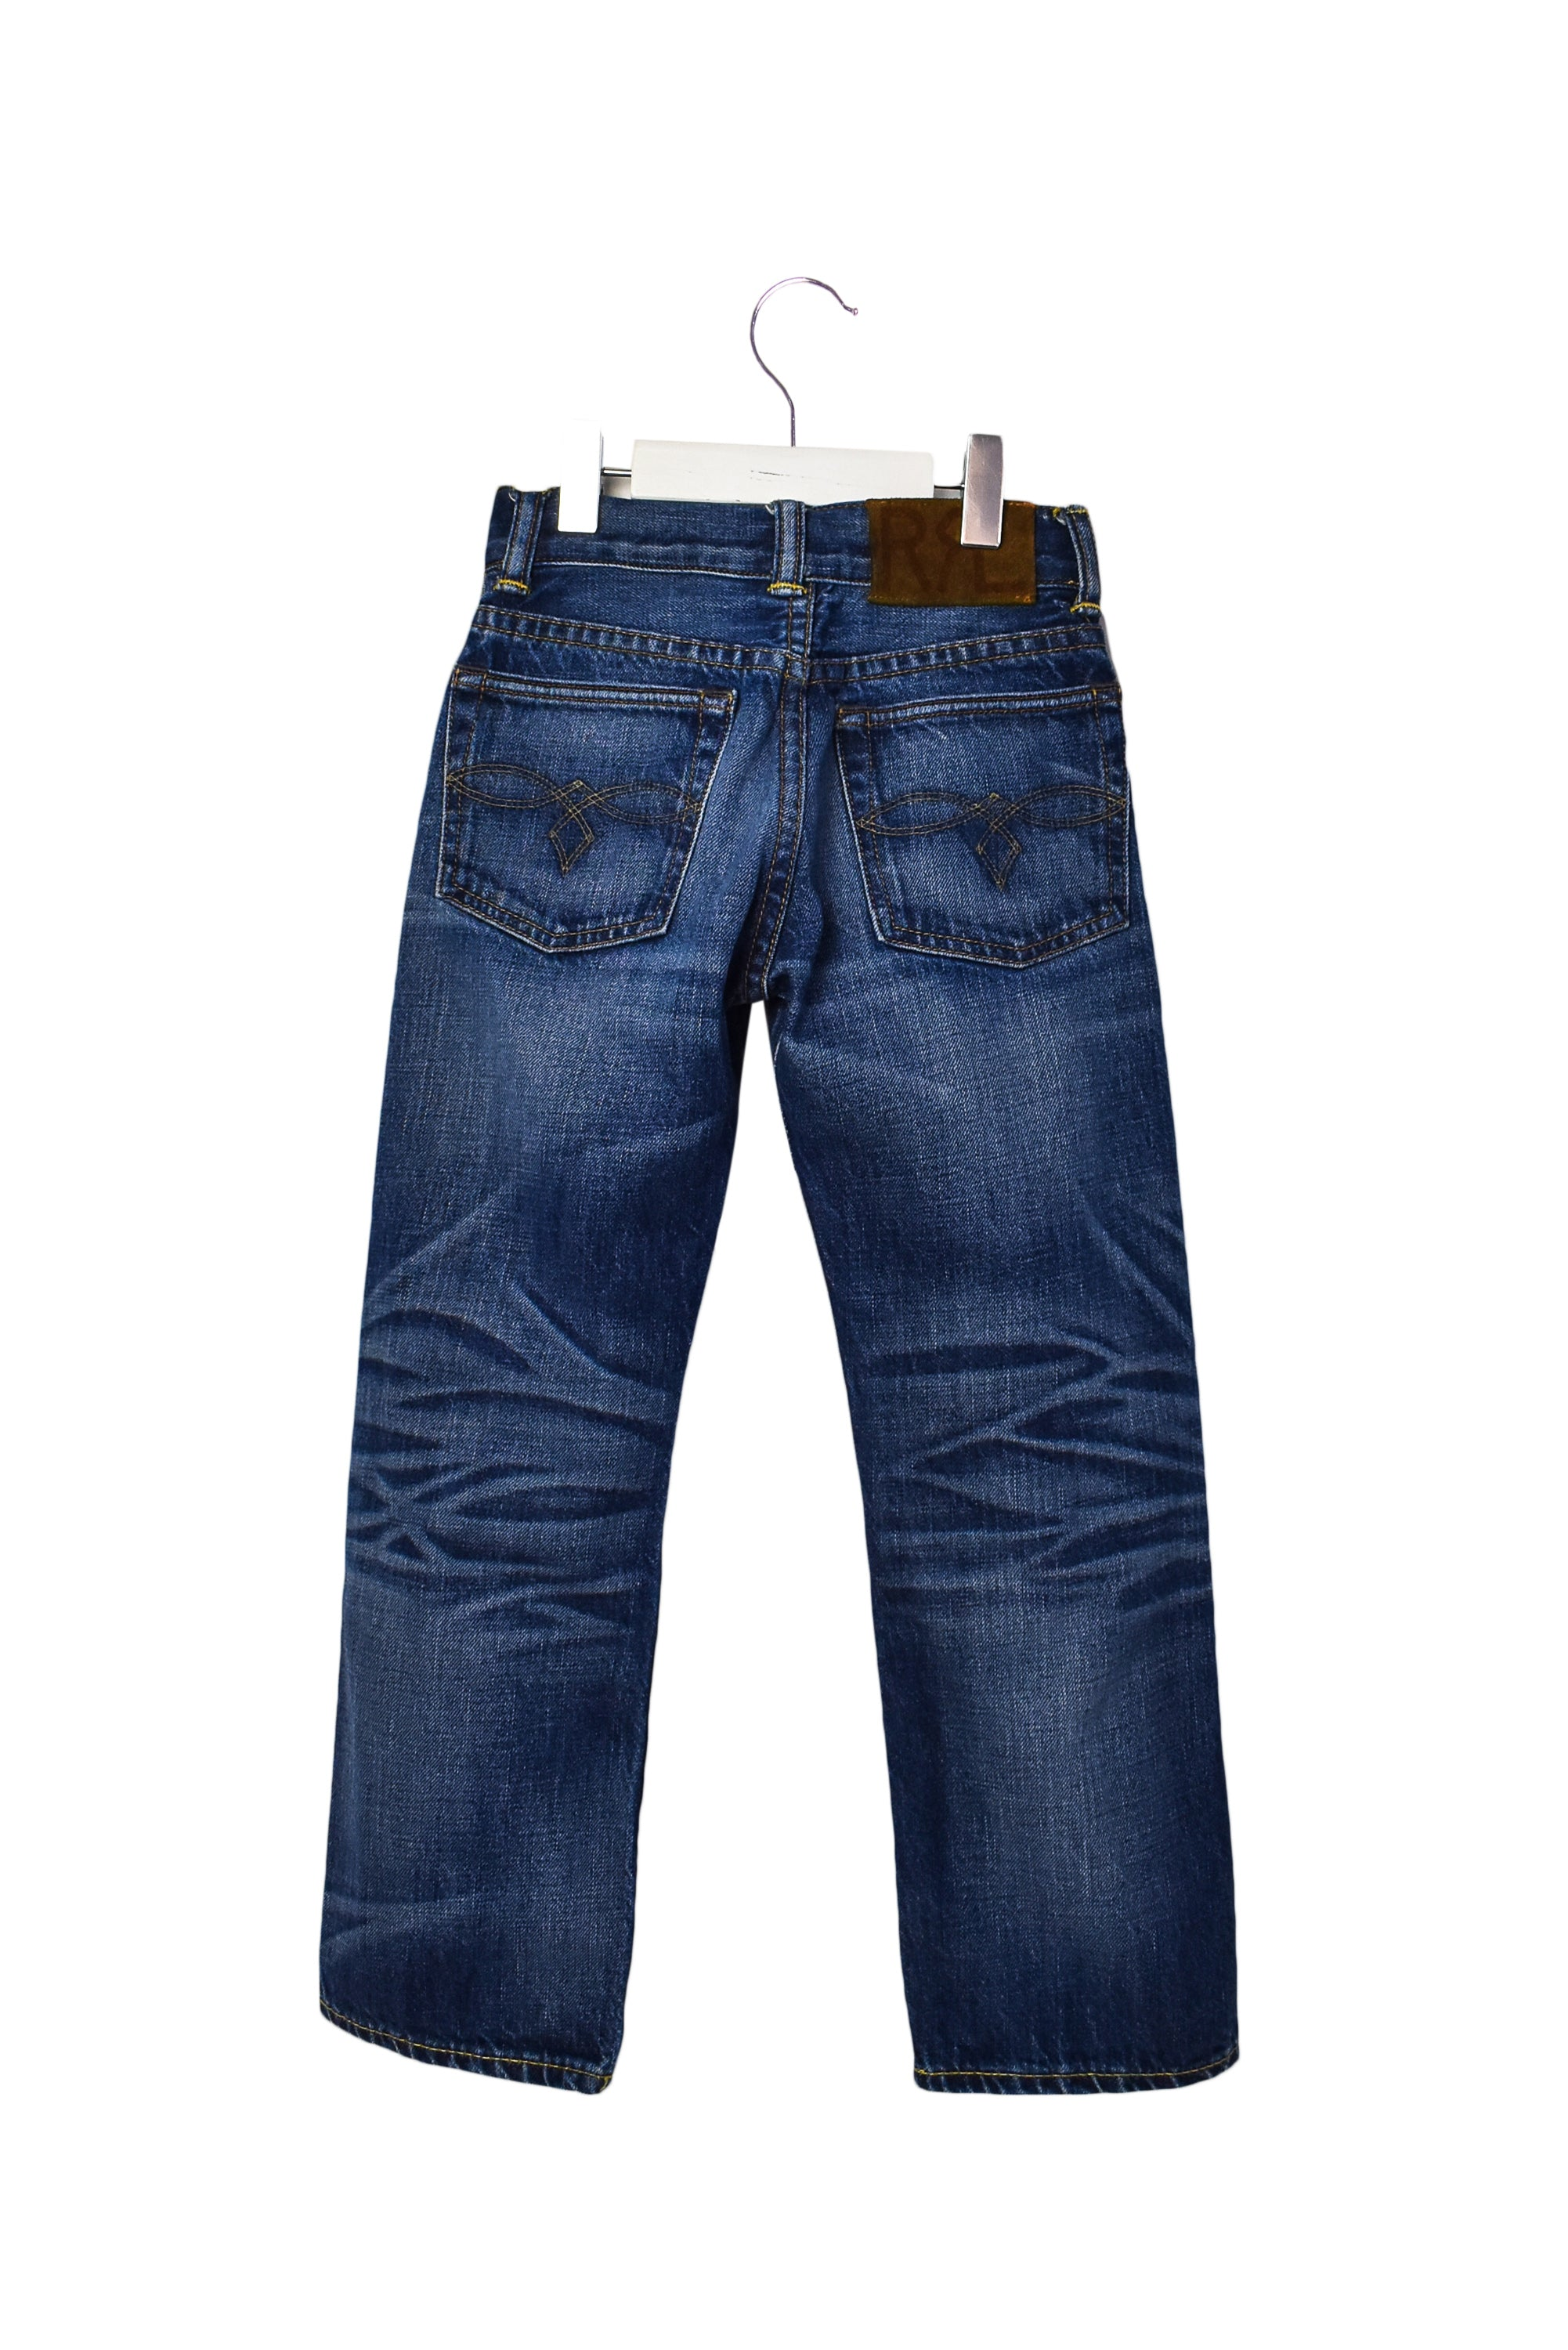 10006922 Ralph Lauren Kids~ Jeans 5T at Retykle